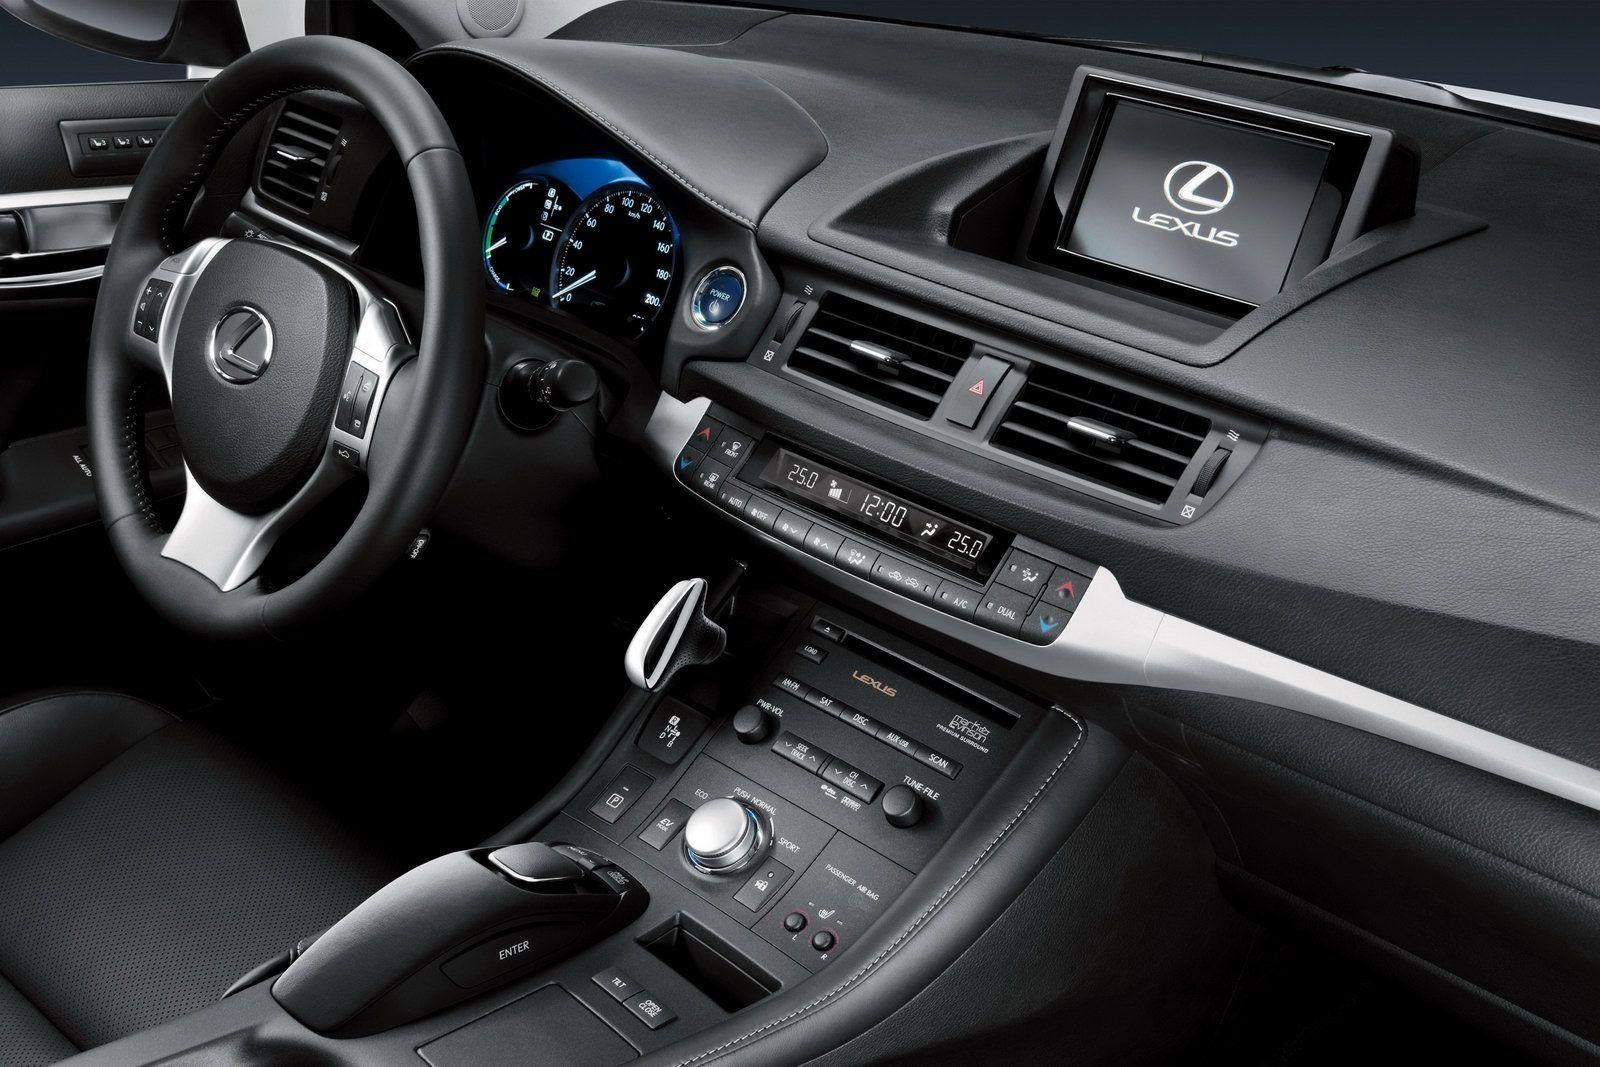 New lexus ct 200h official details and photos leaked lexus ct 200h 2011 img_7